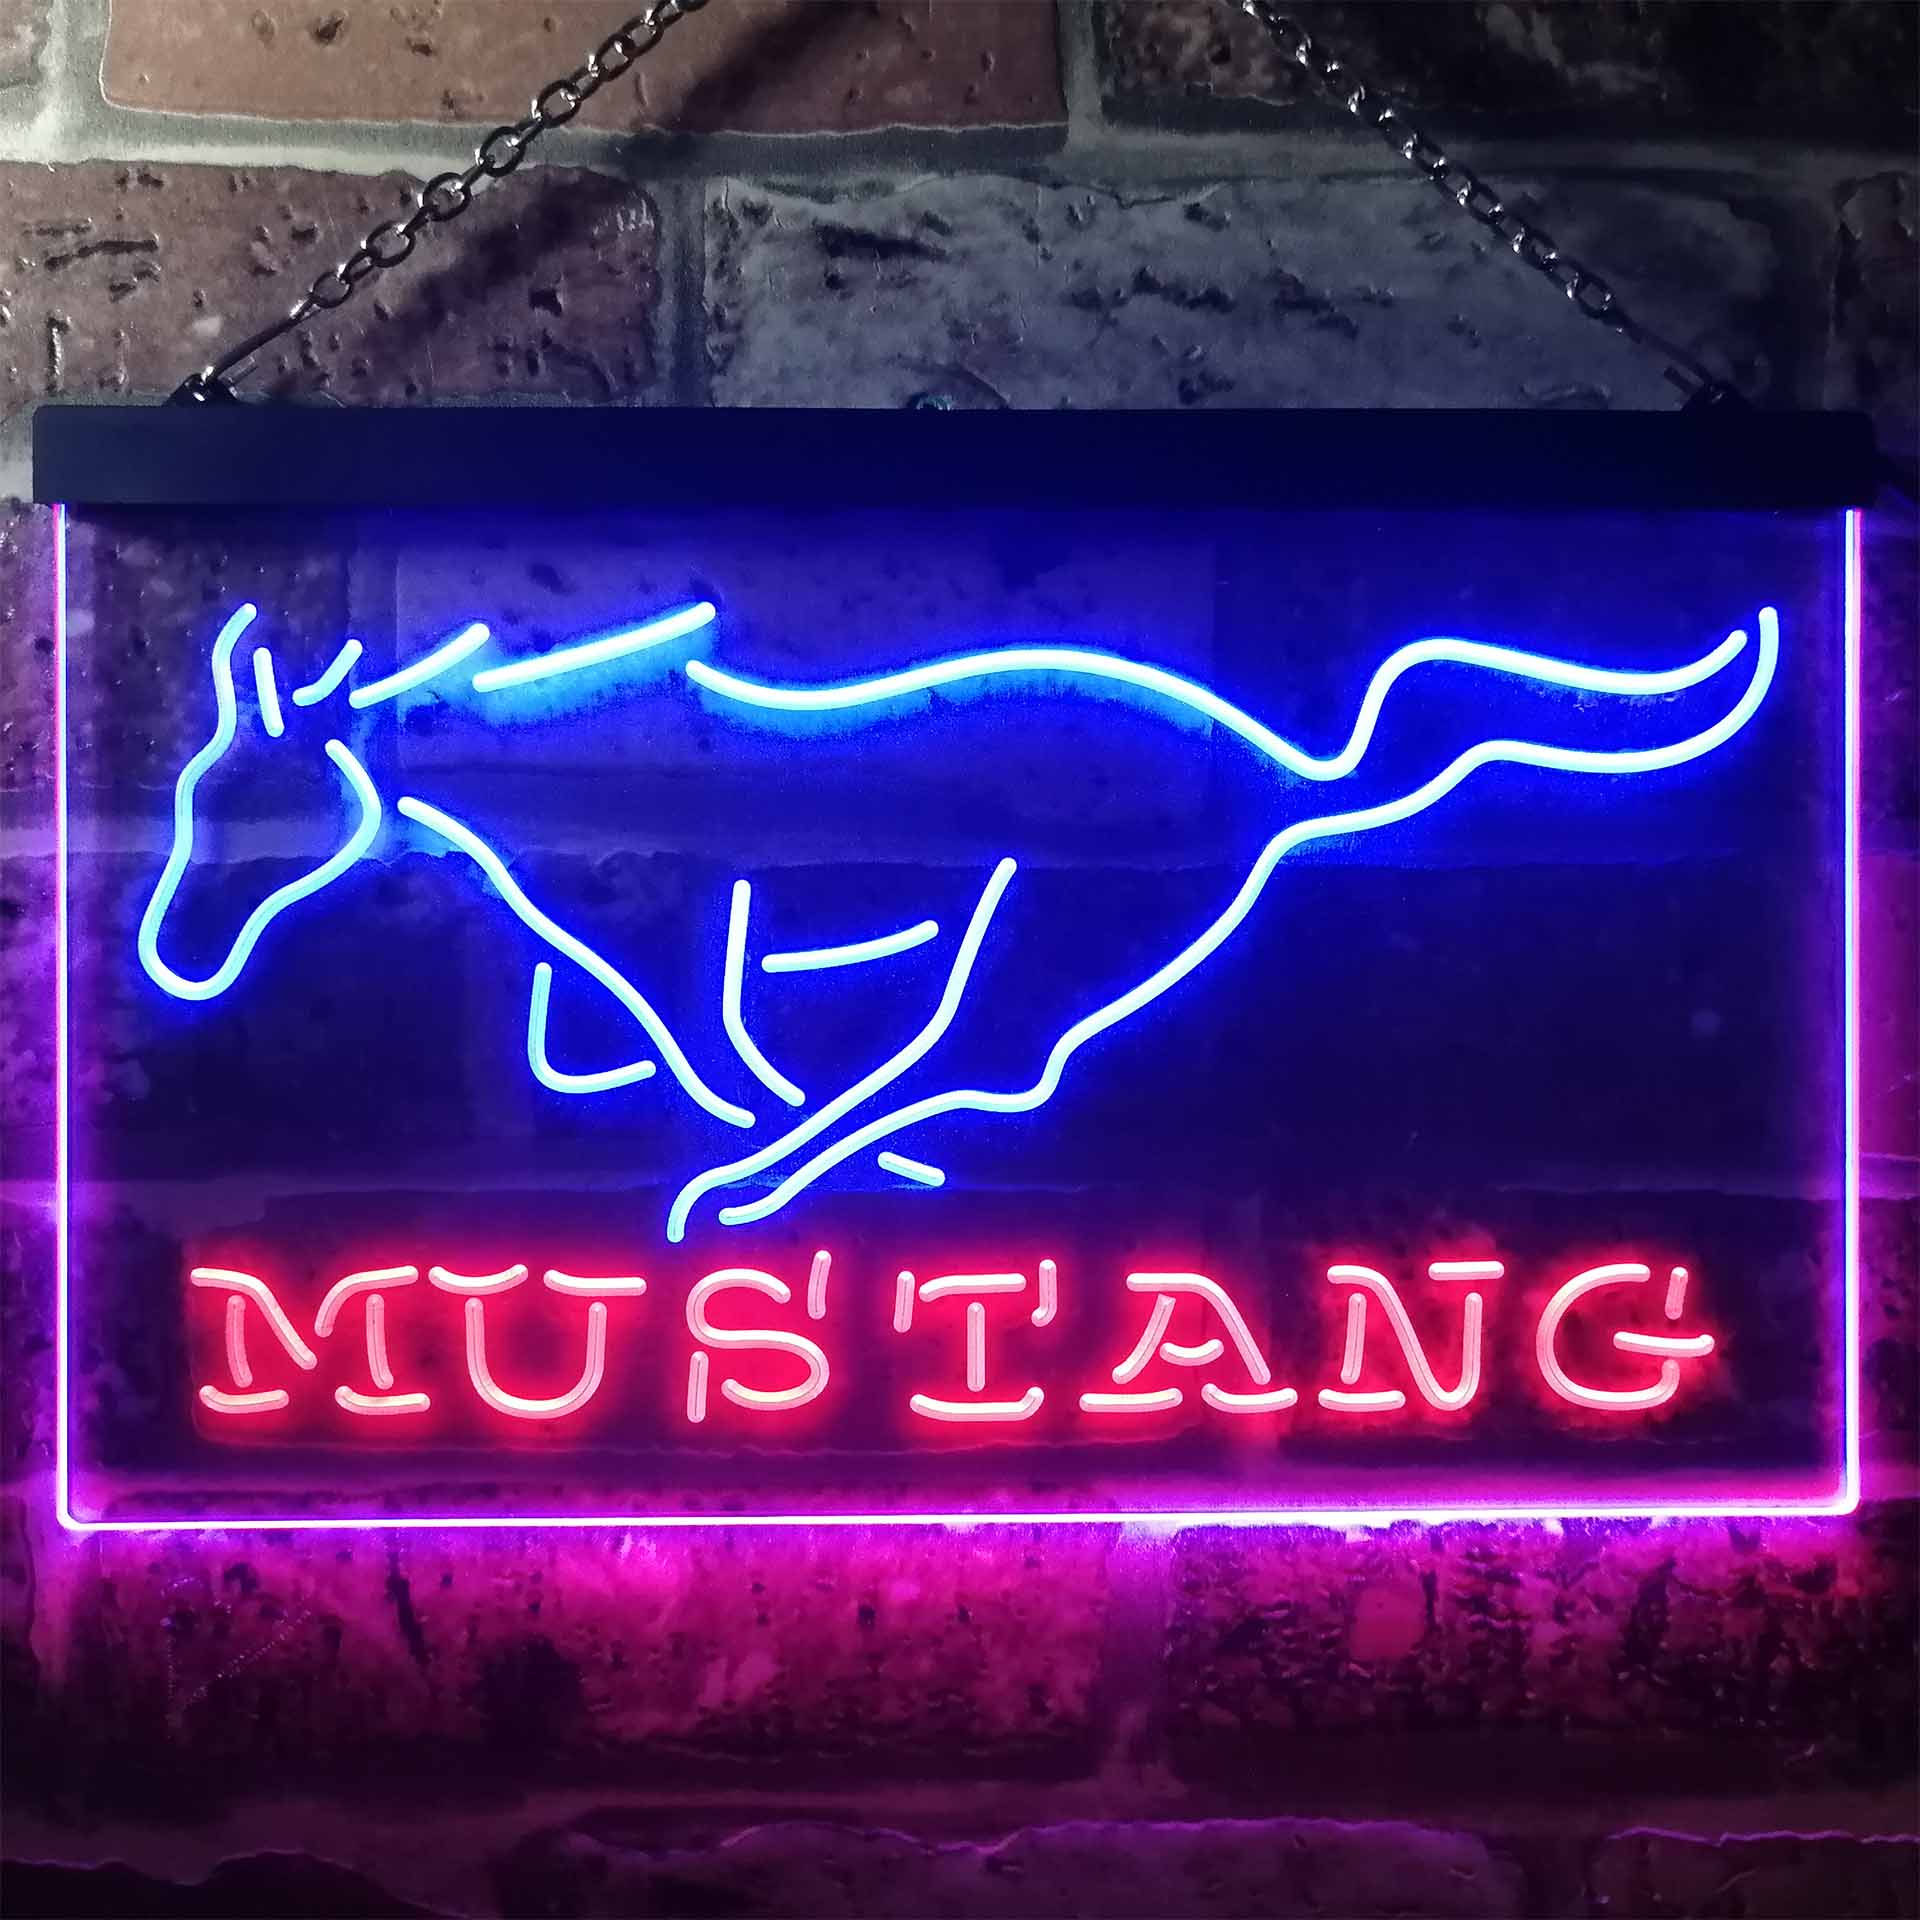 Mustang Ford Dual Color LED Neon Sign ProLedSign